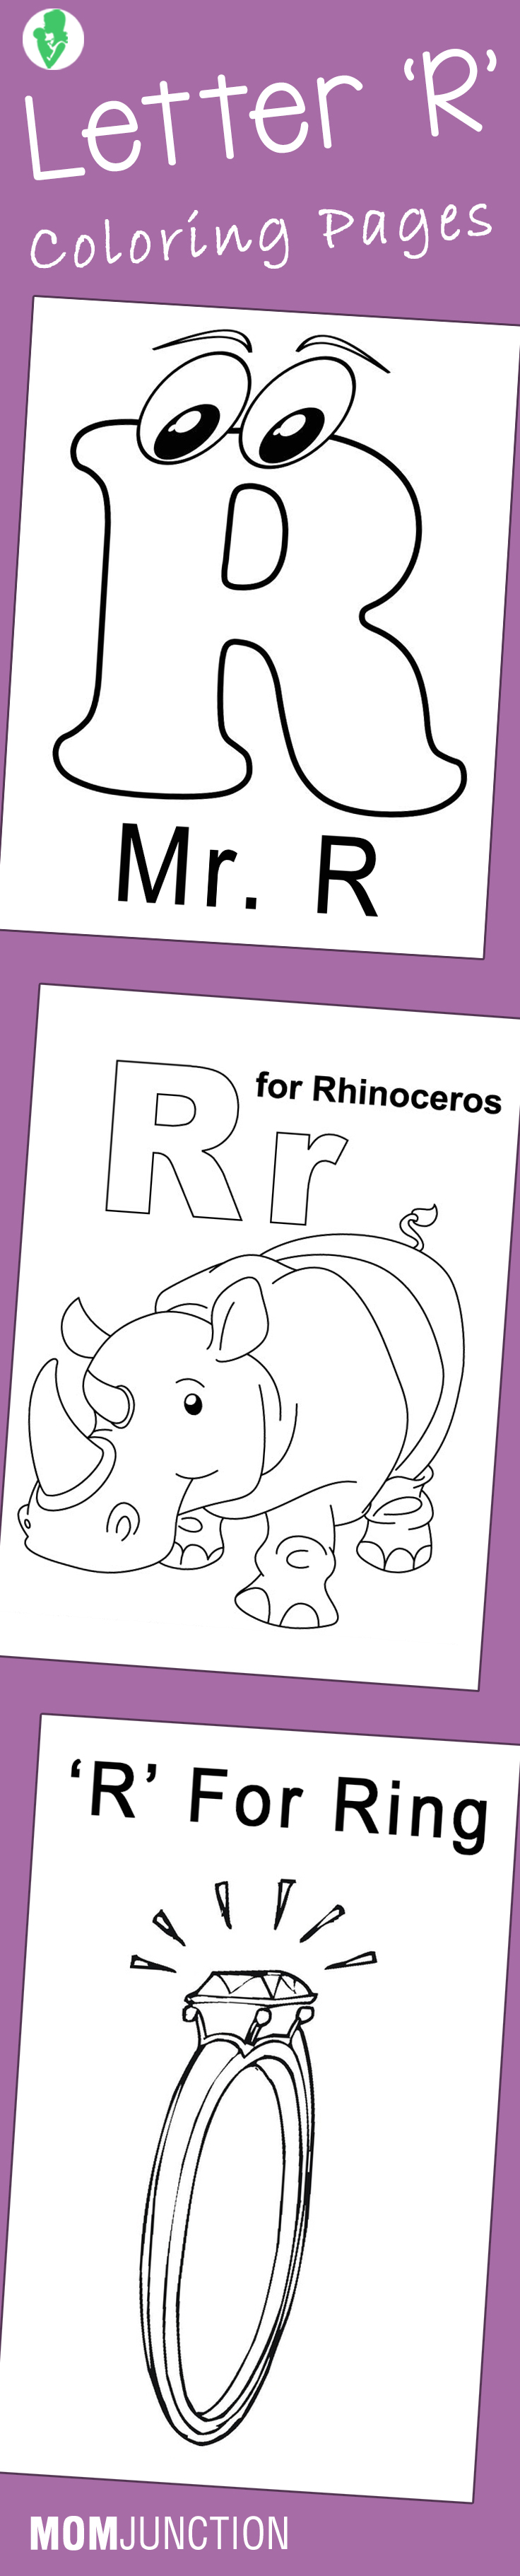 Letter r coloring pages for toddlers - Top 10 Free Printable Letter R Coloring Pages Online